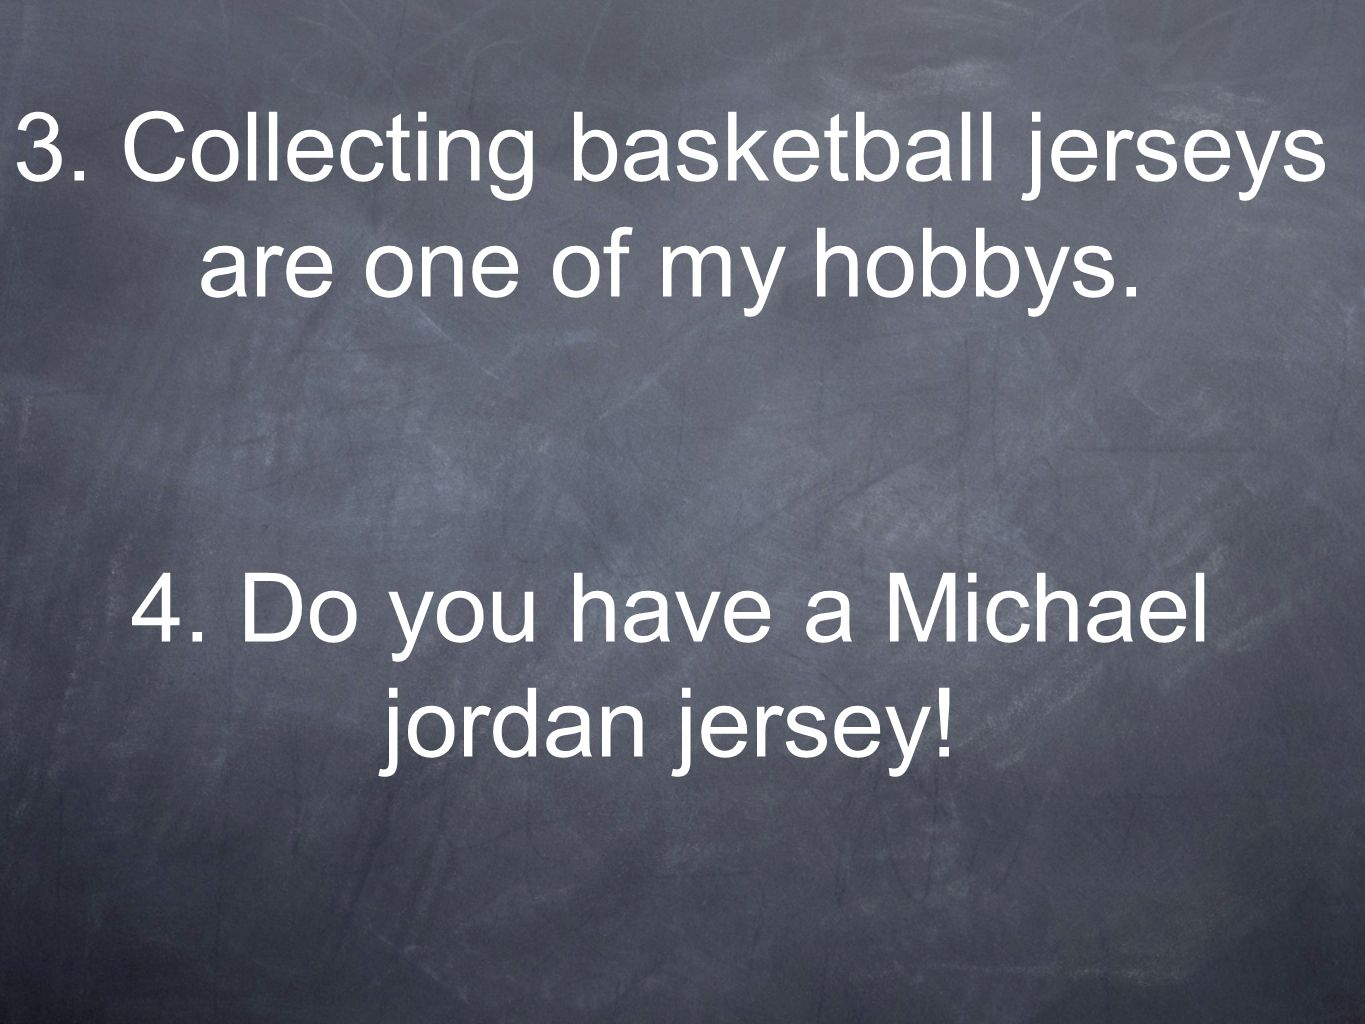 3. Collecting basketball jerseys are one of my hobbys. 4. Do you have a Michael jordan jersey!